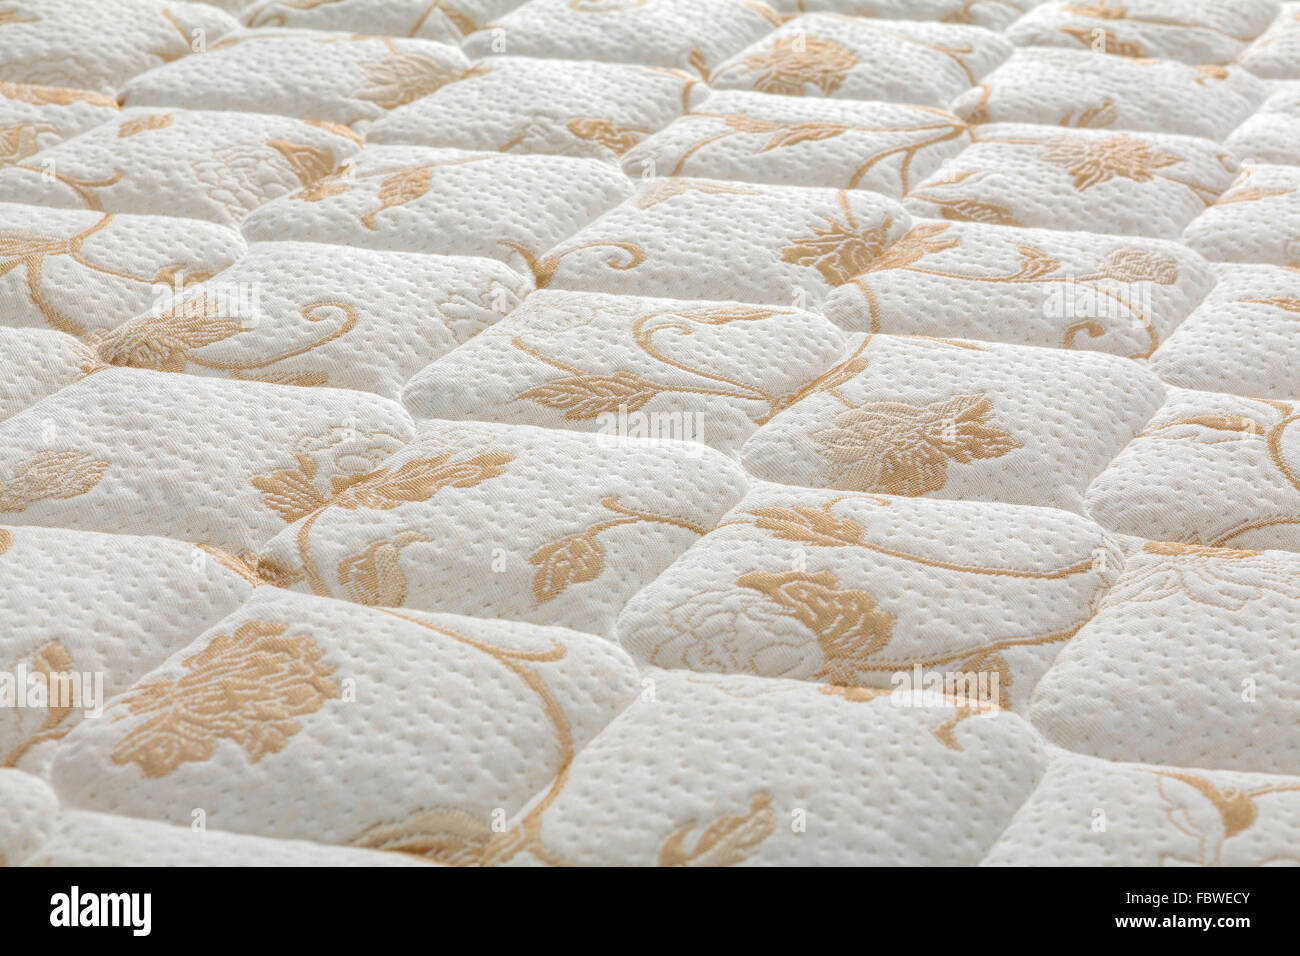 Brand new clean mattress cover surface Stock Photo, Royalty Free ...